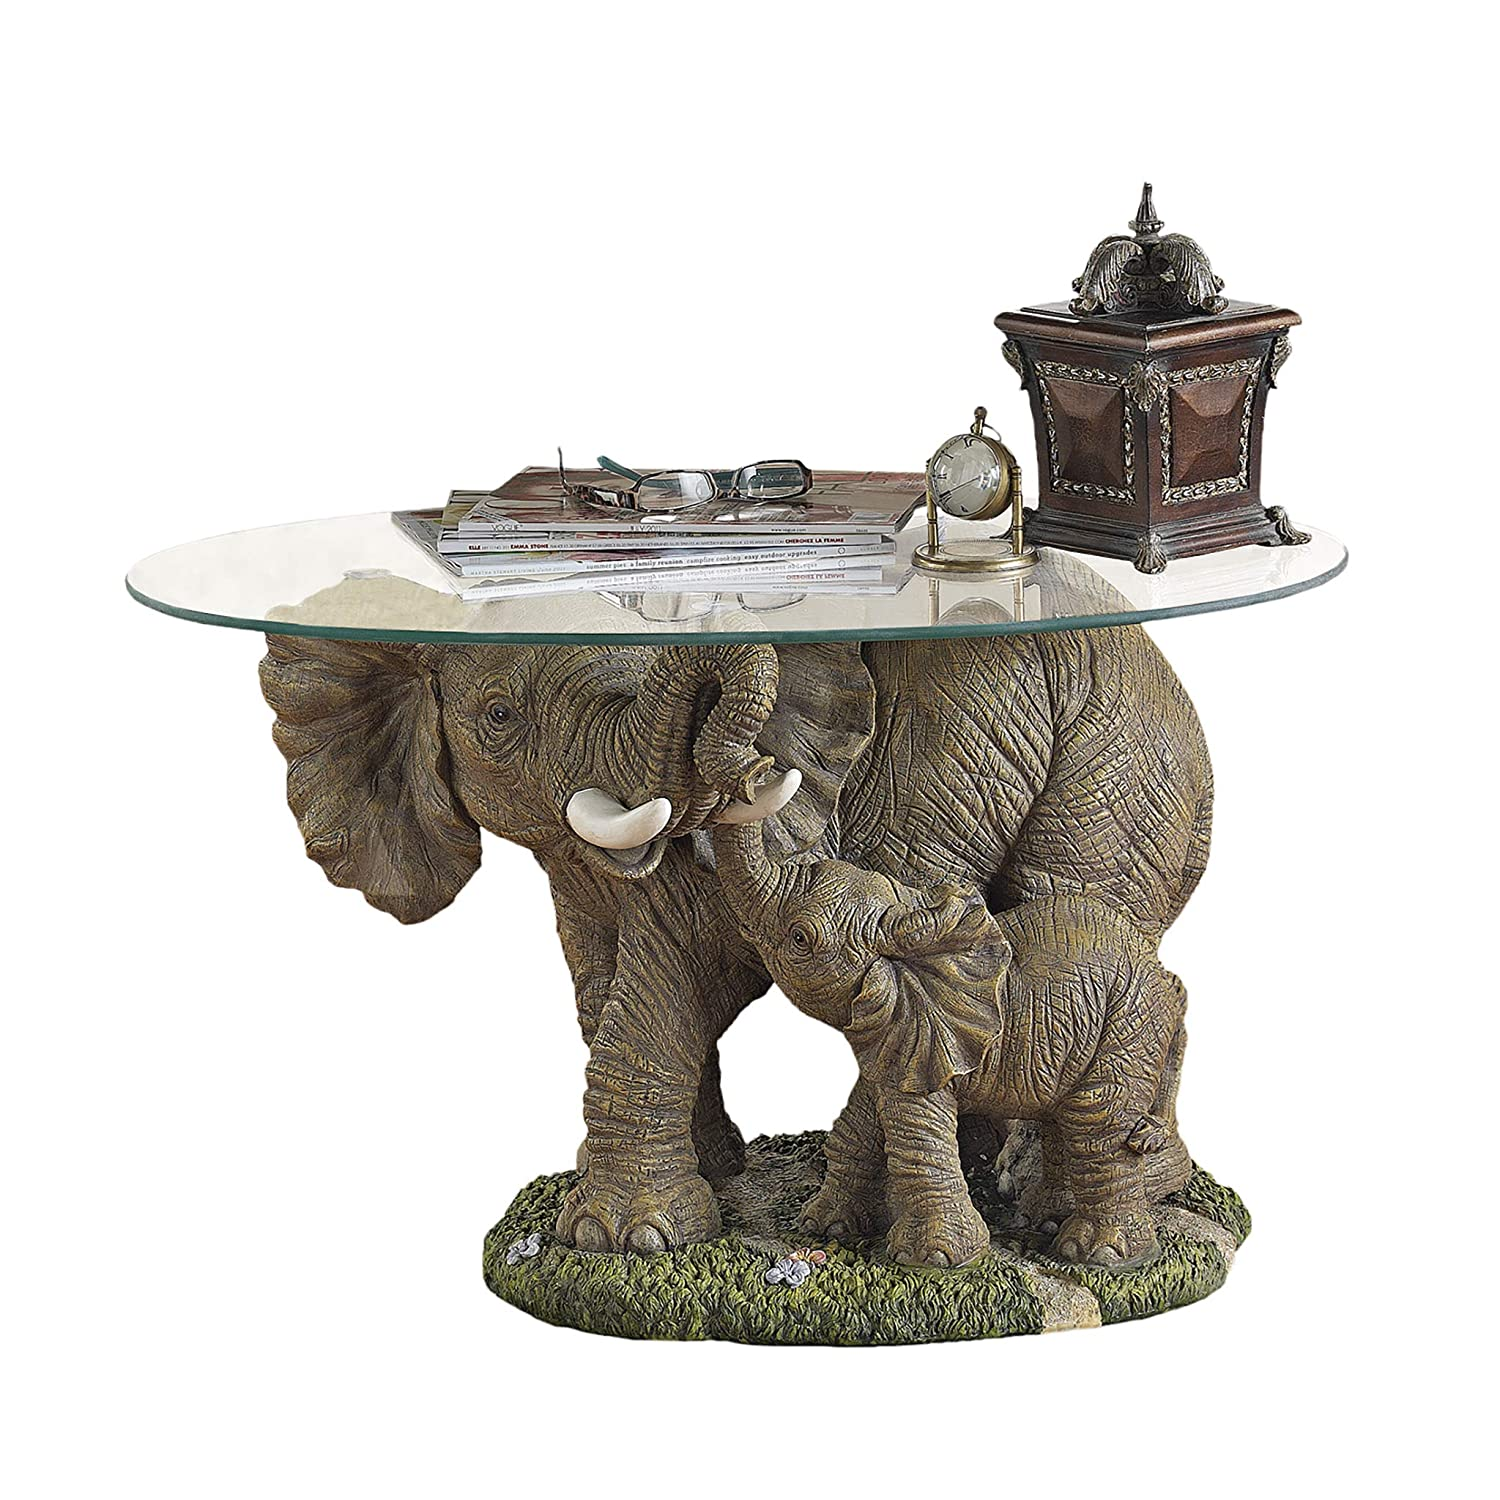 Polyresin Design Toscano Elephants Majesty African Decor Coffee Table with Glass Top 30 Inch Full Color EU30543